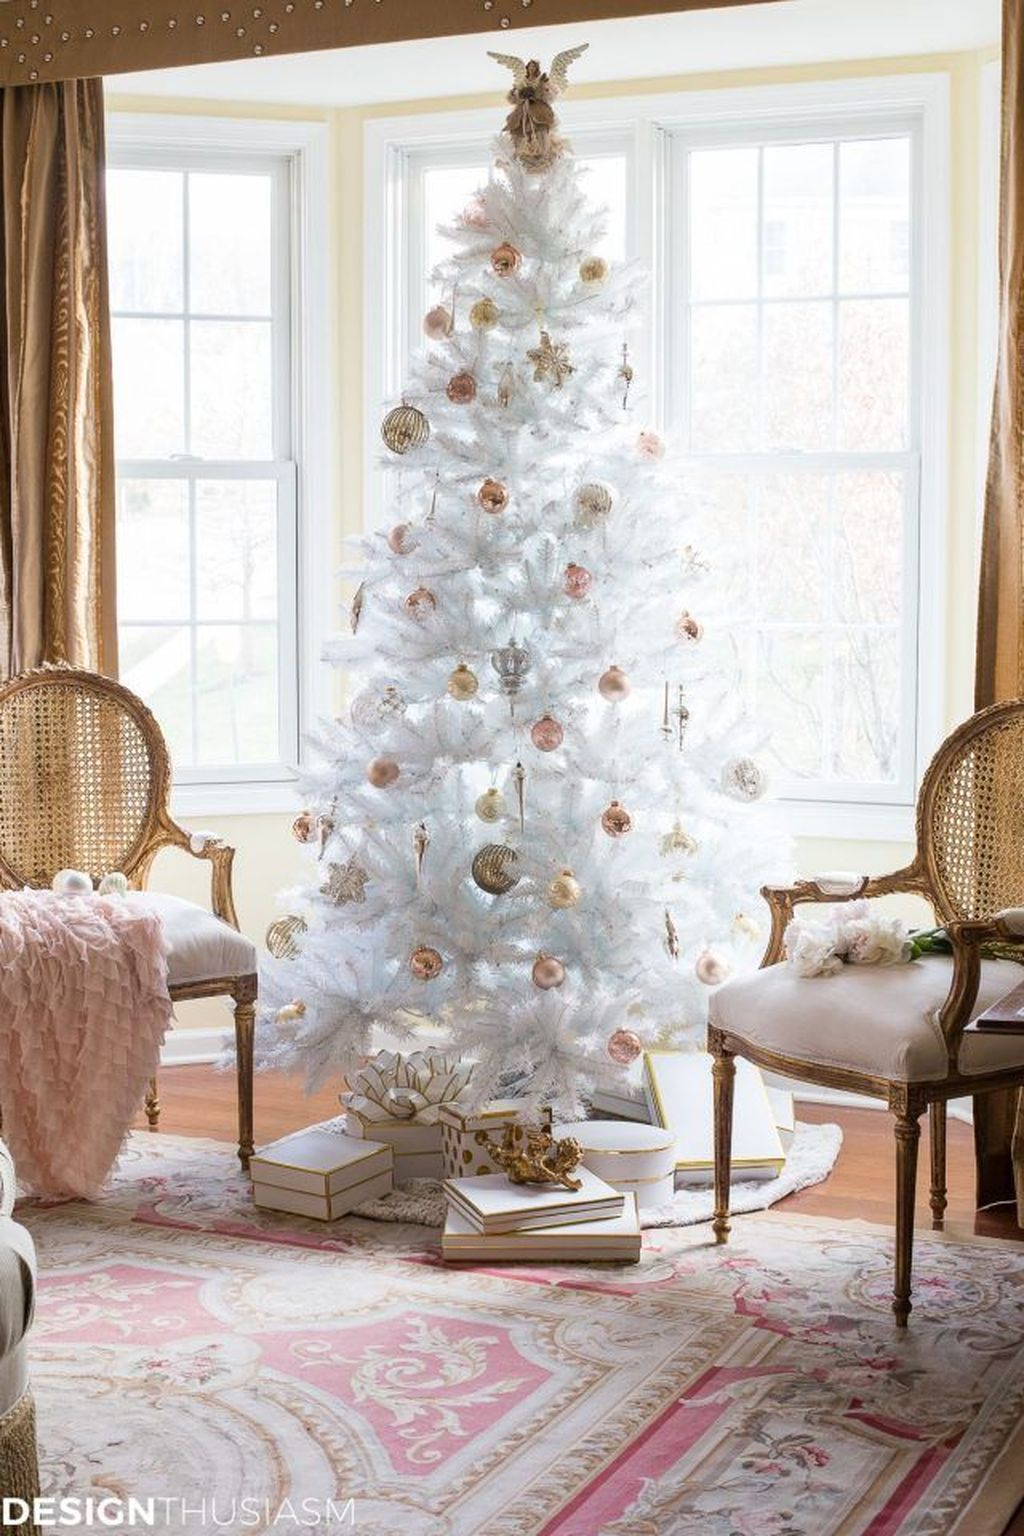 Stunning White Christmas Tree Ideas To Decorate Your Interior 21